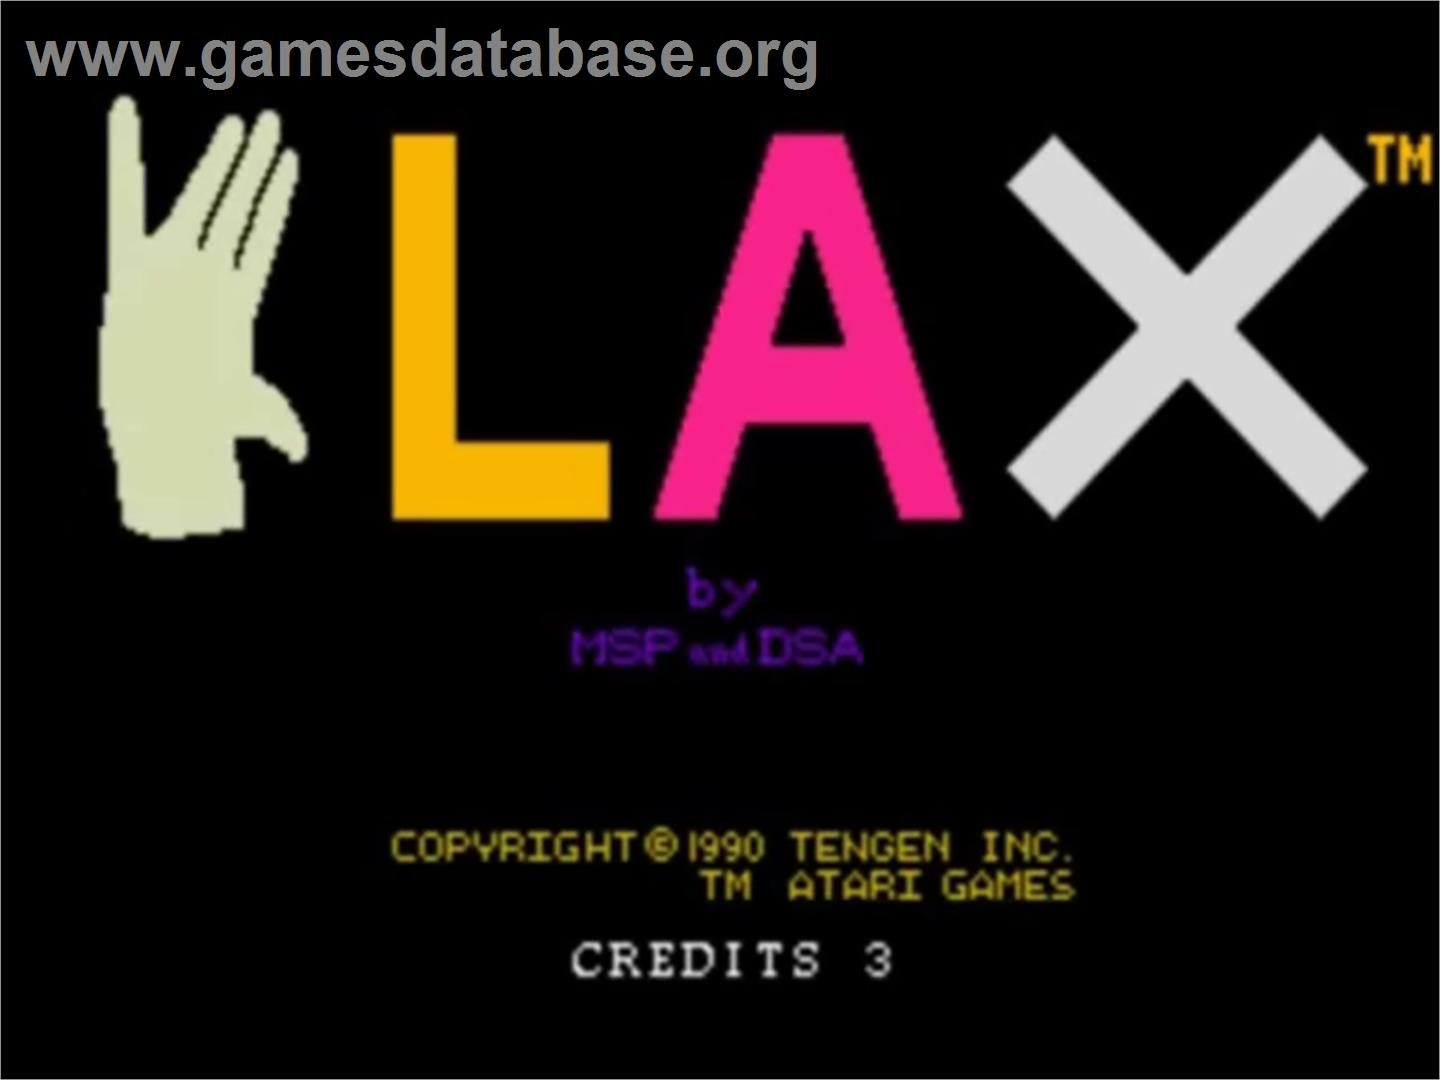 Klax - NEC TurboGrafx-16 - Artwork - Title Screen